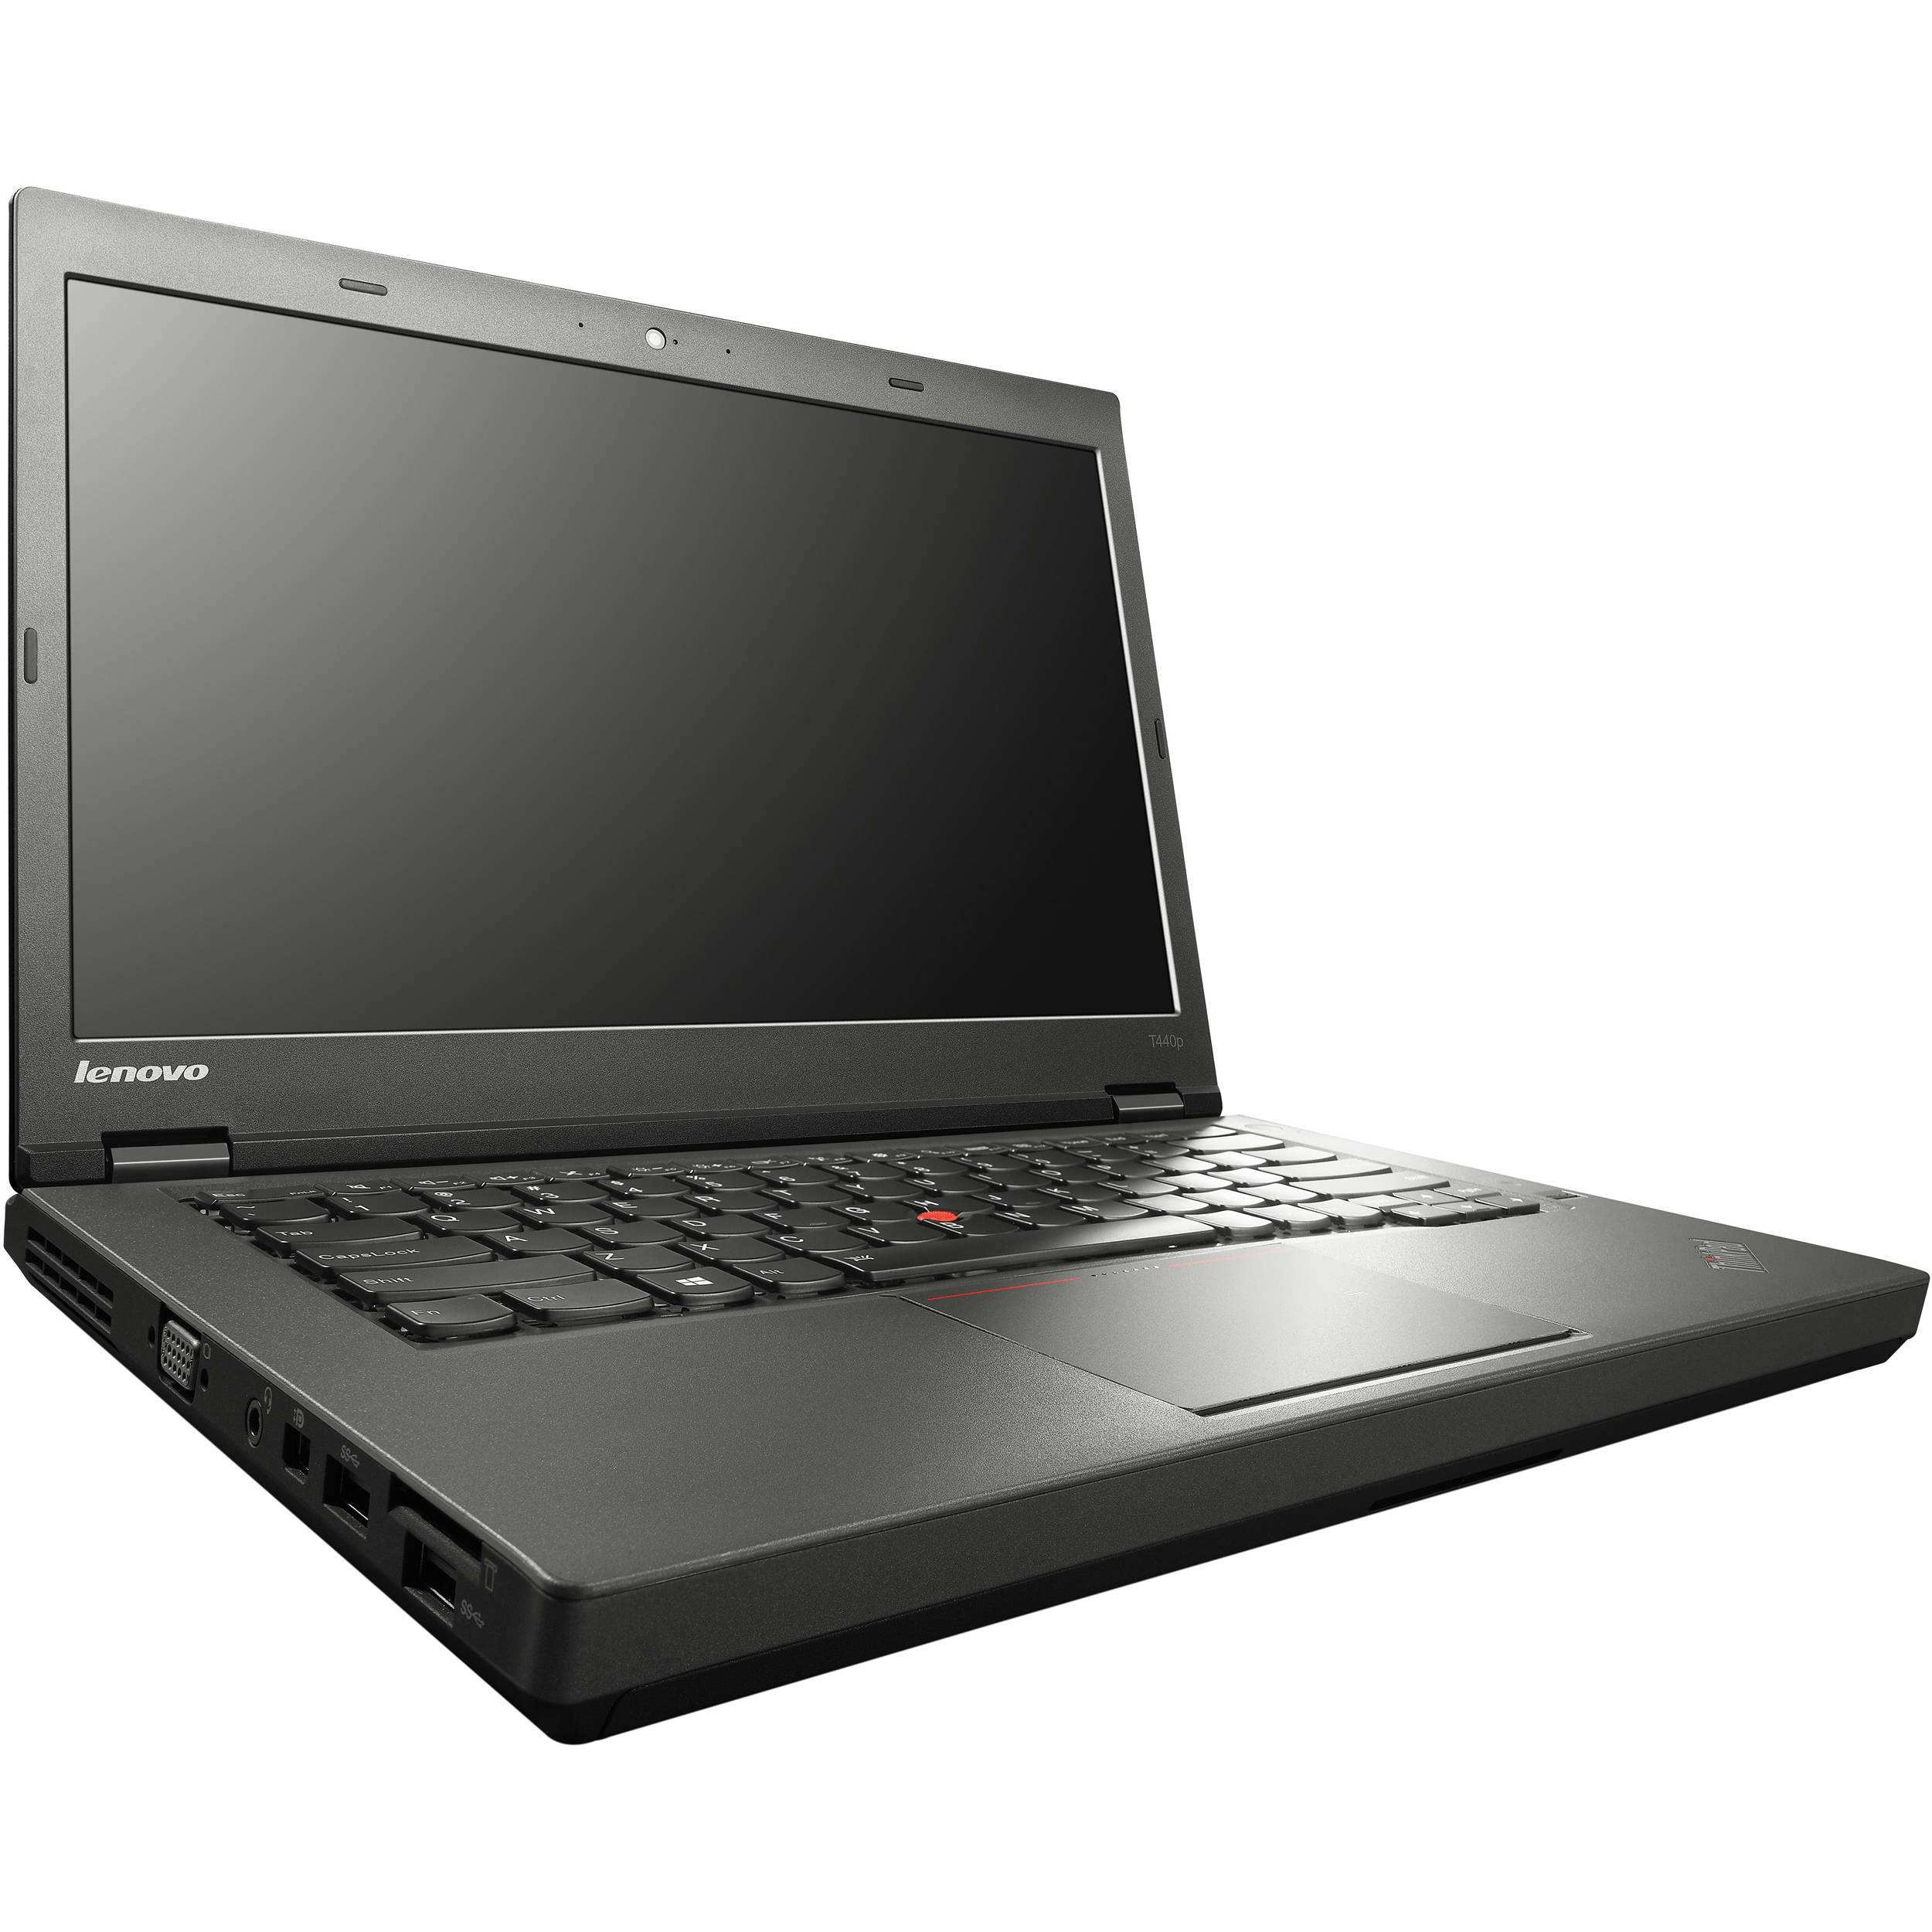 Lenovo Thinkpad T440p 20an009cus 14 Quot Notebook 20an009cus